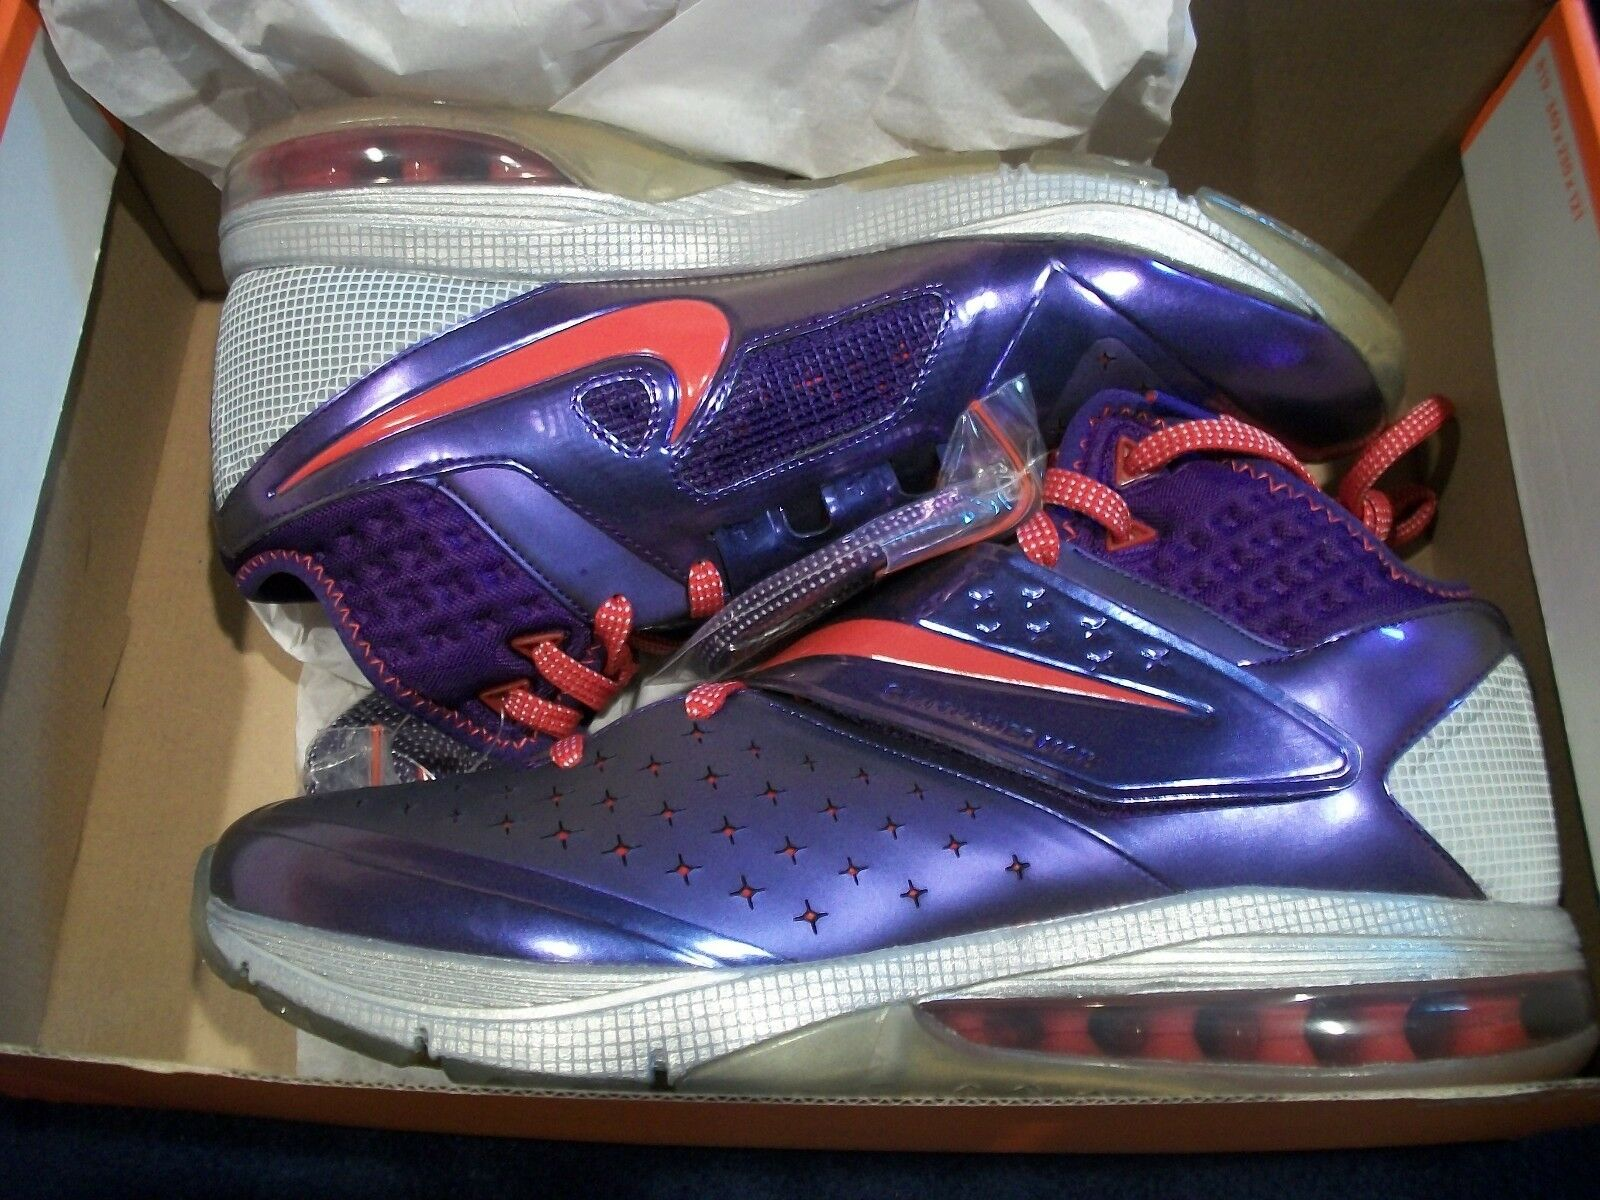 Nike CJ81 Trainer Max Men's Boy's Shoes Purple/ Red - Gray 603711 500 Size 9